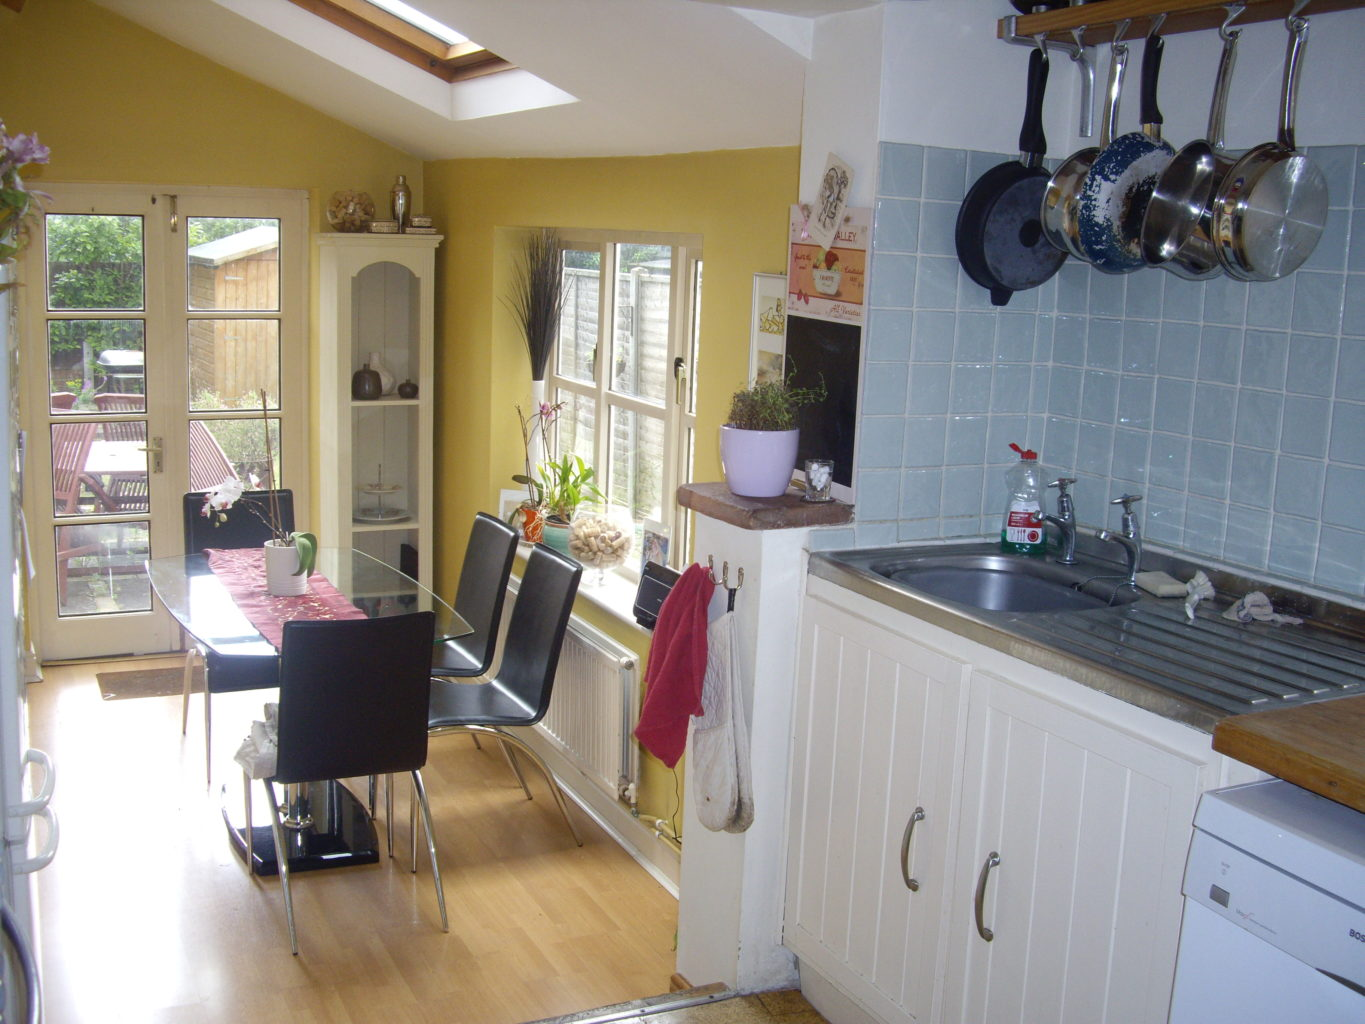 Rent this property in St Philips Road Norwich, by Kings & Co Lettings